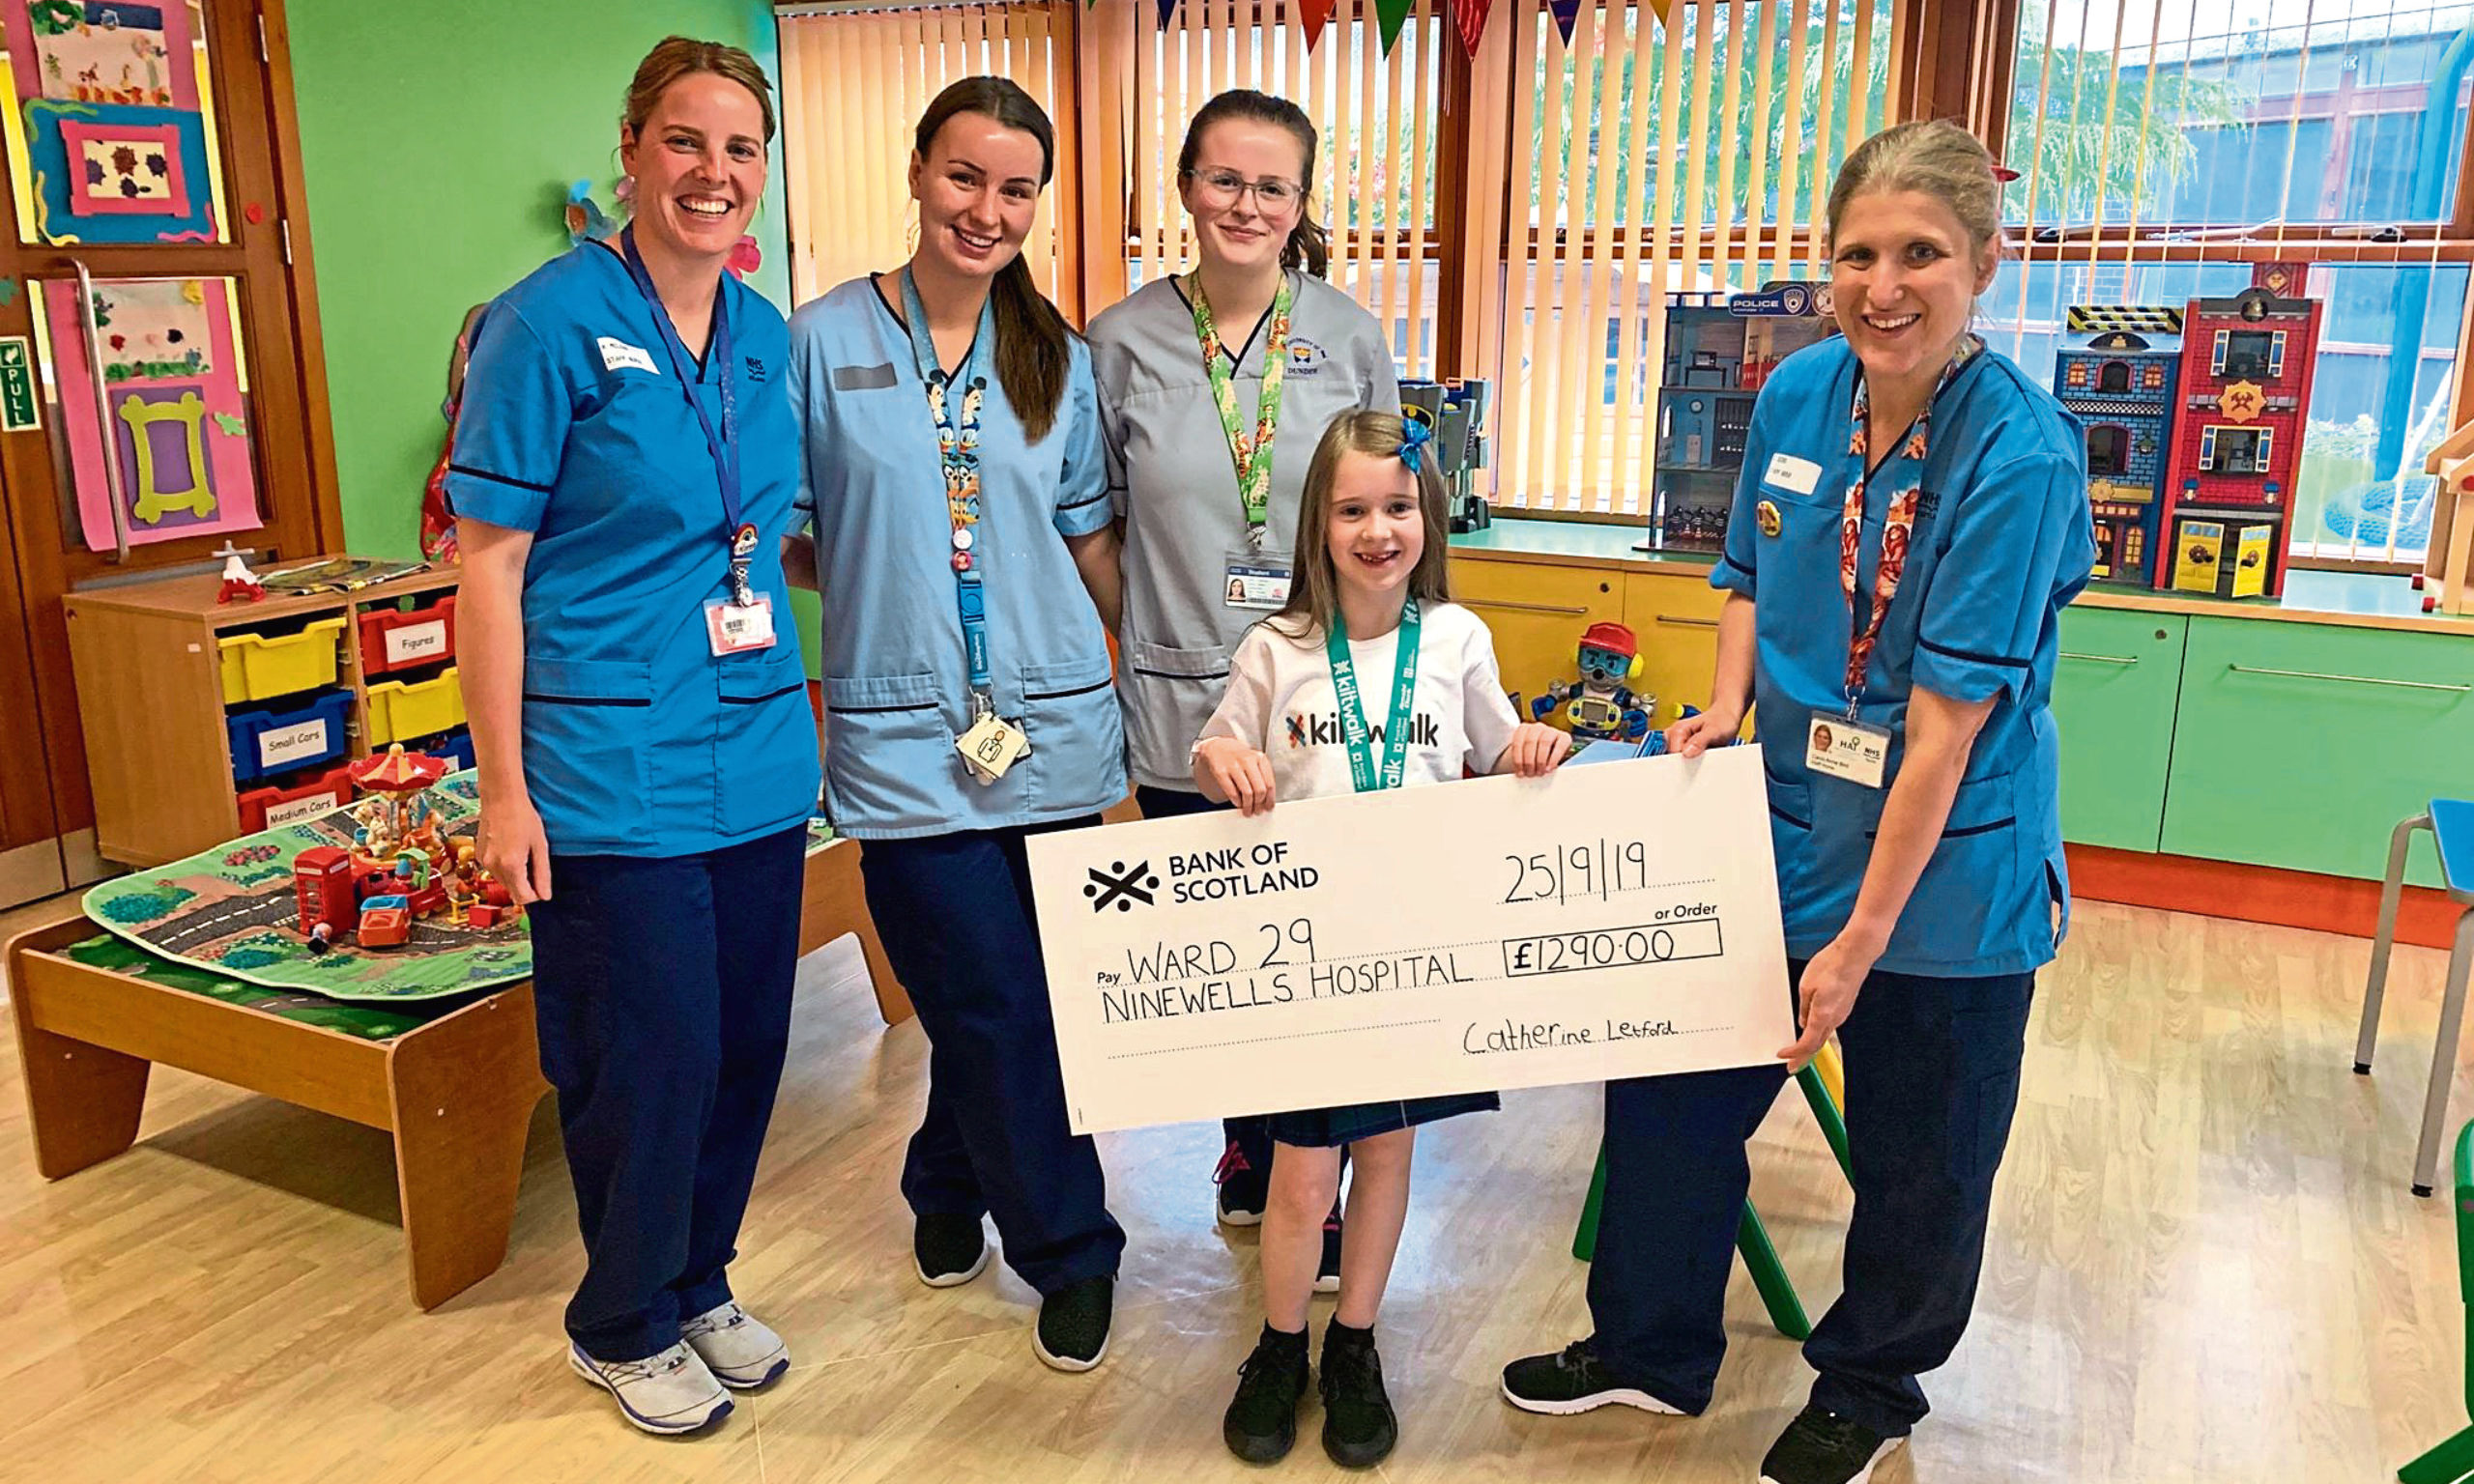 Catherine Letford has presented a cheque to Ninewells Hospital after completing the Kiltwalk where she made friends with weather presenter Sean Batty.  She also has a new friend at home after mum and dad bought Oor Pc Murdoch at the auction.